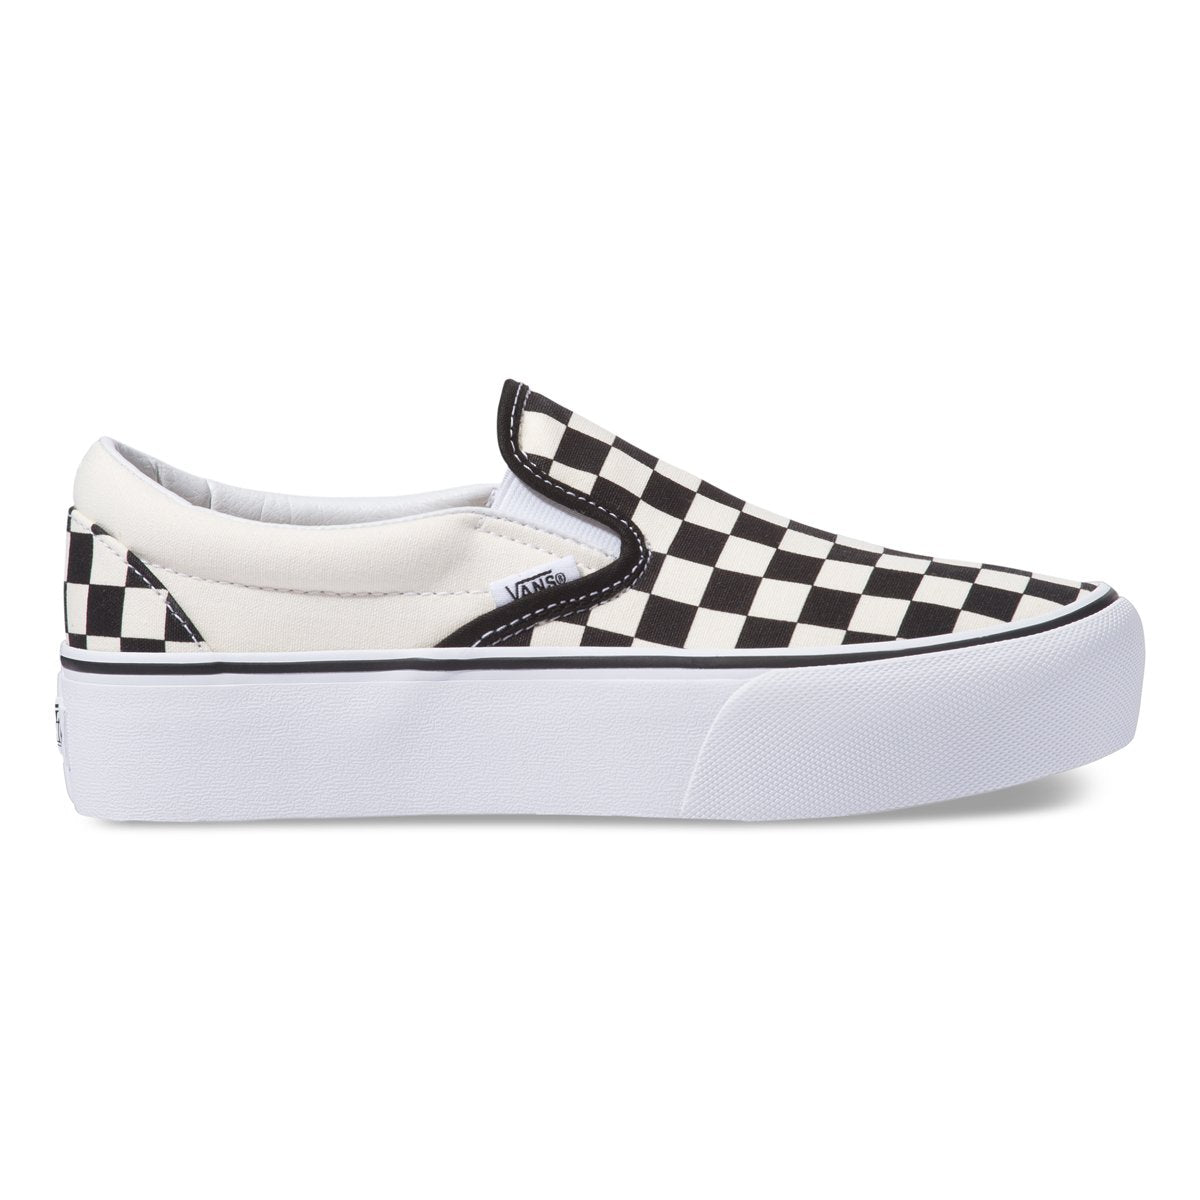 Zapatillas Classic Slip On Platform - Black & White Checker - Vans